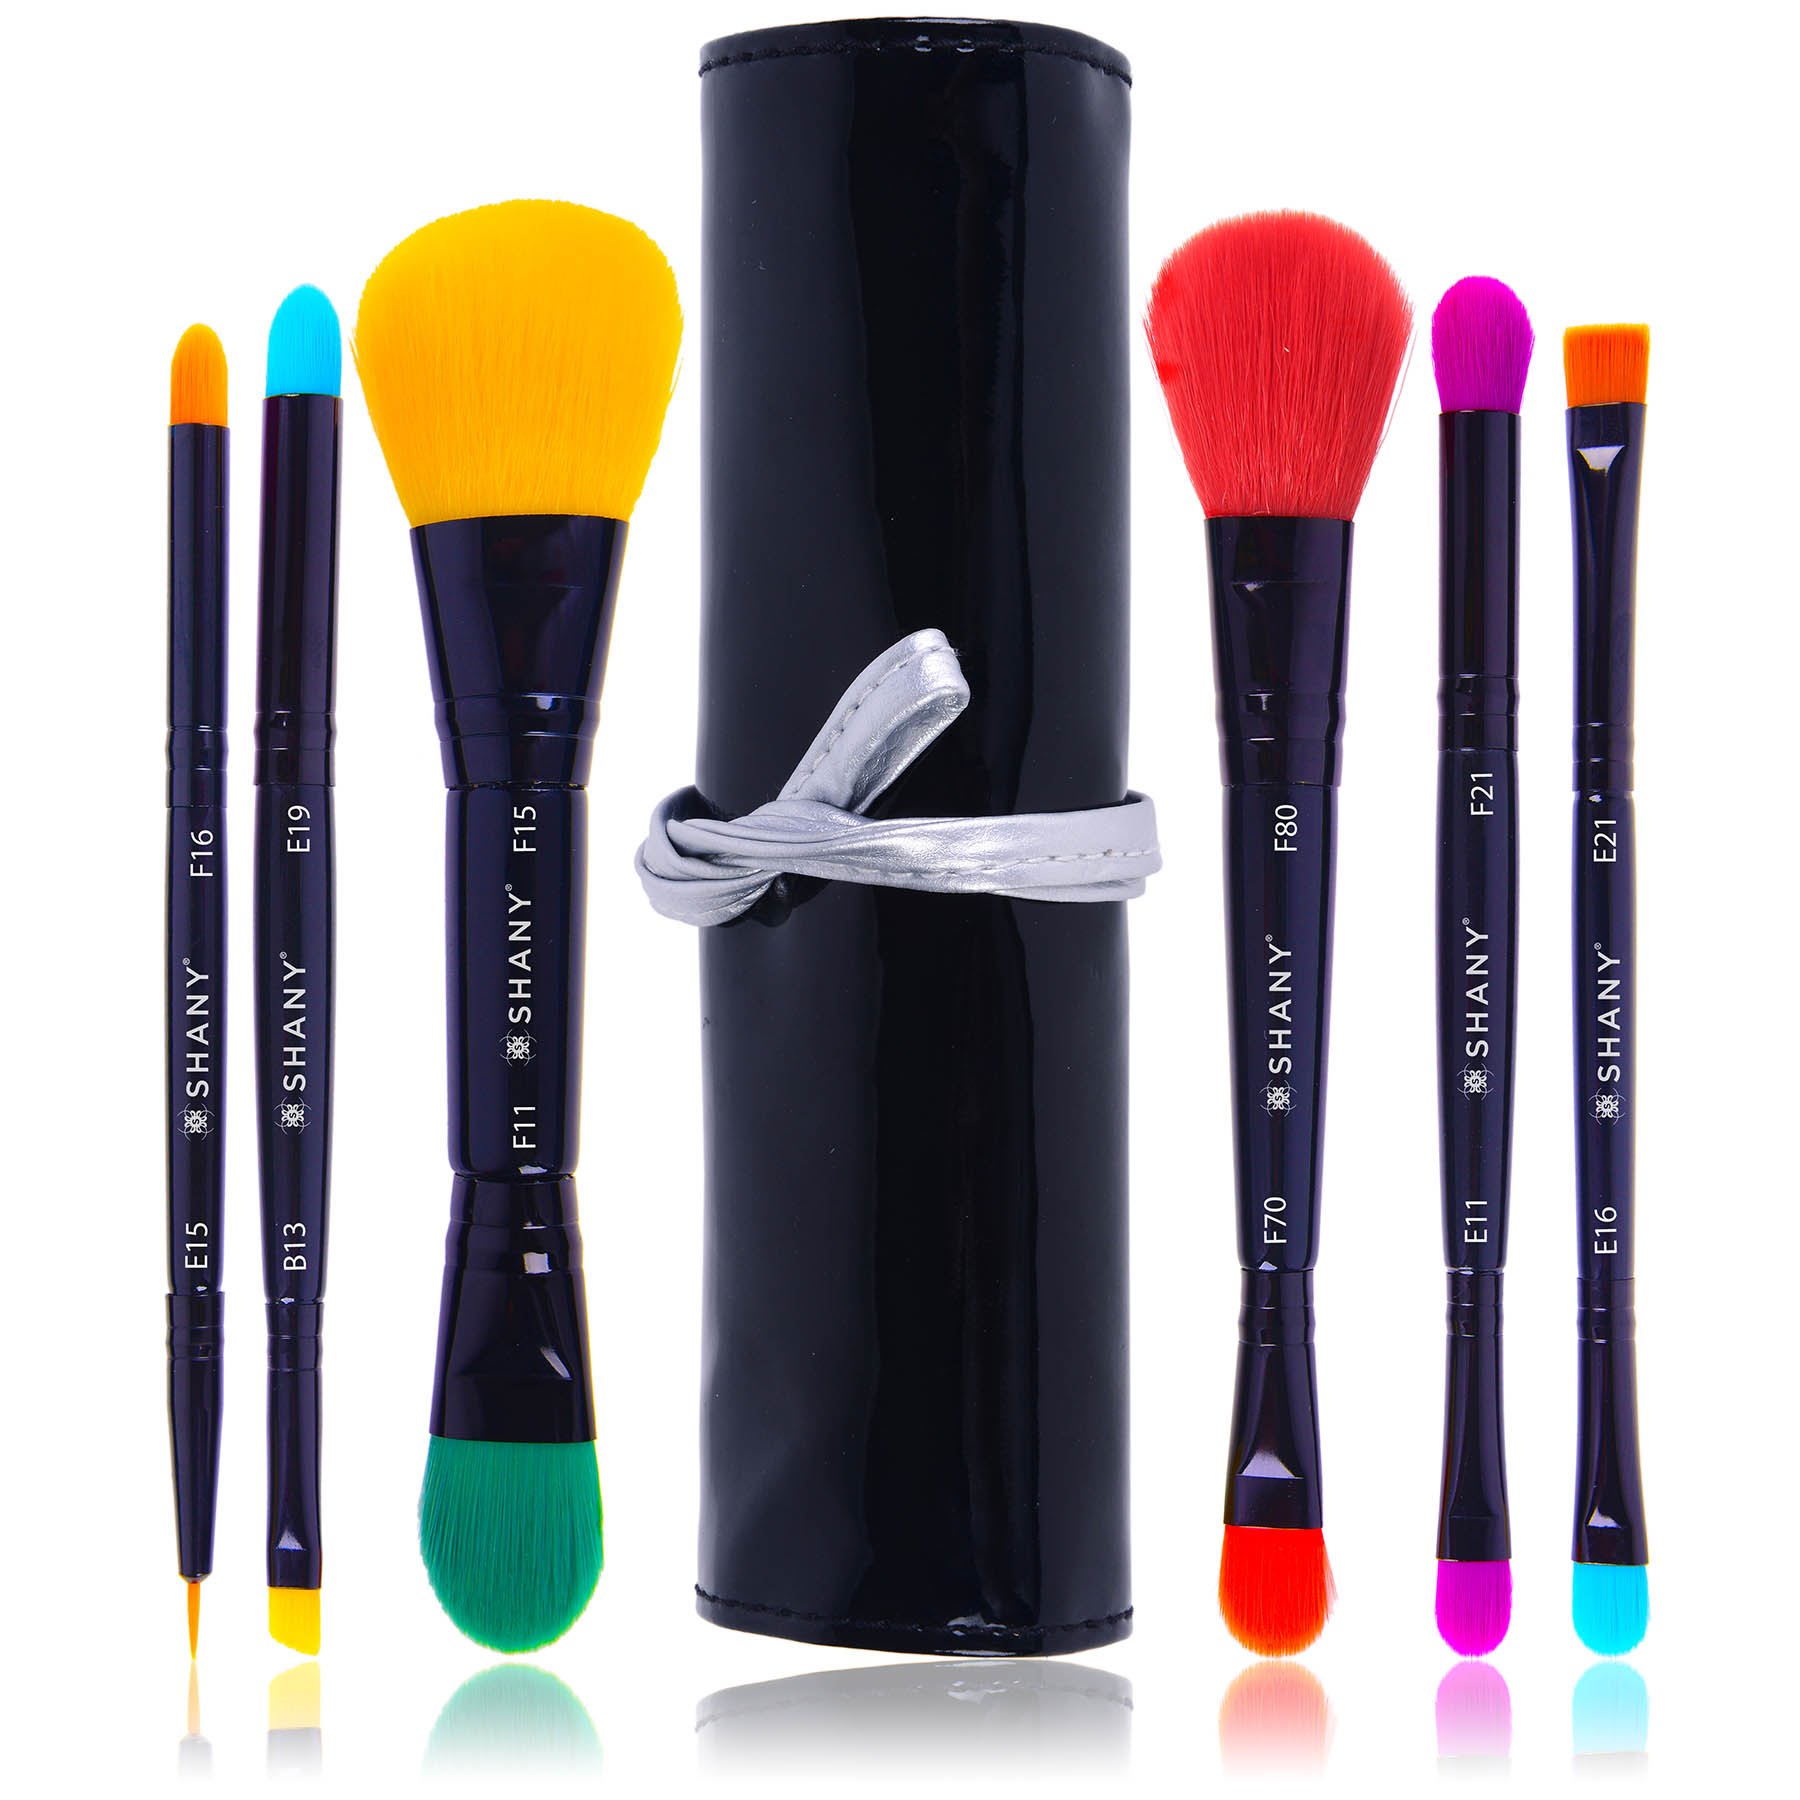 SHANY LUNA Double Sided Travel Make Up Brush Set with Pouch (6 Count)